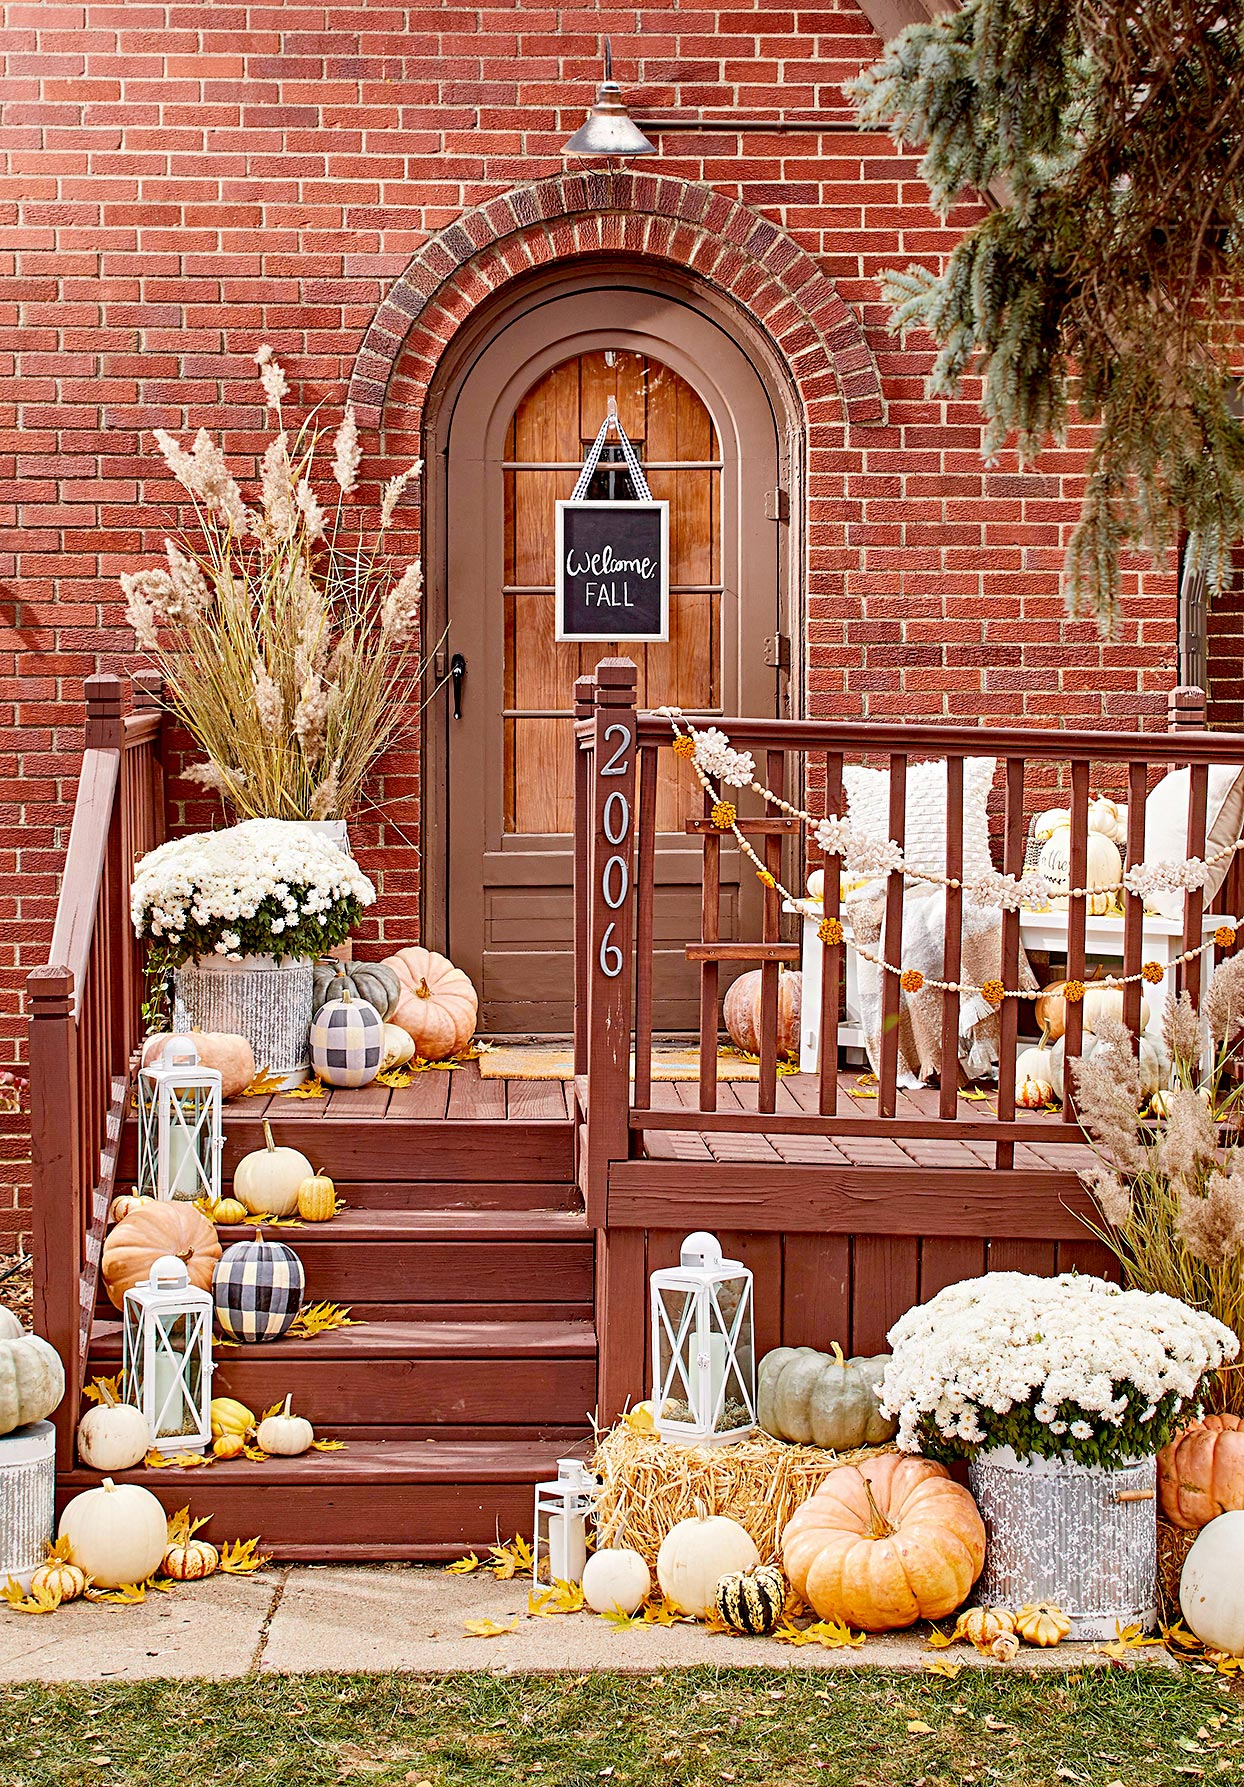 Outdoor Fall Decorating With Mums  from imagesvc.meredithcorp.io